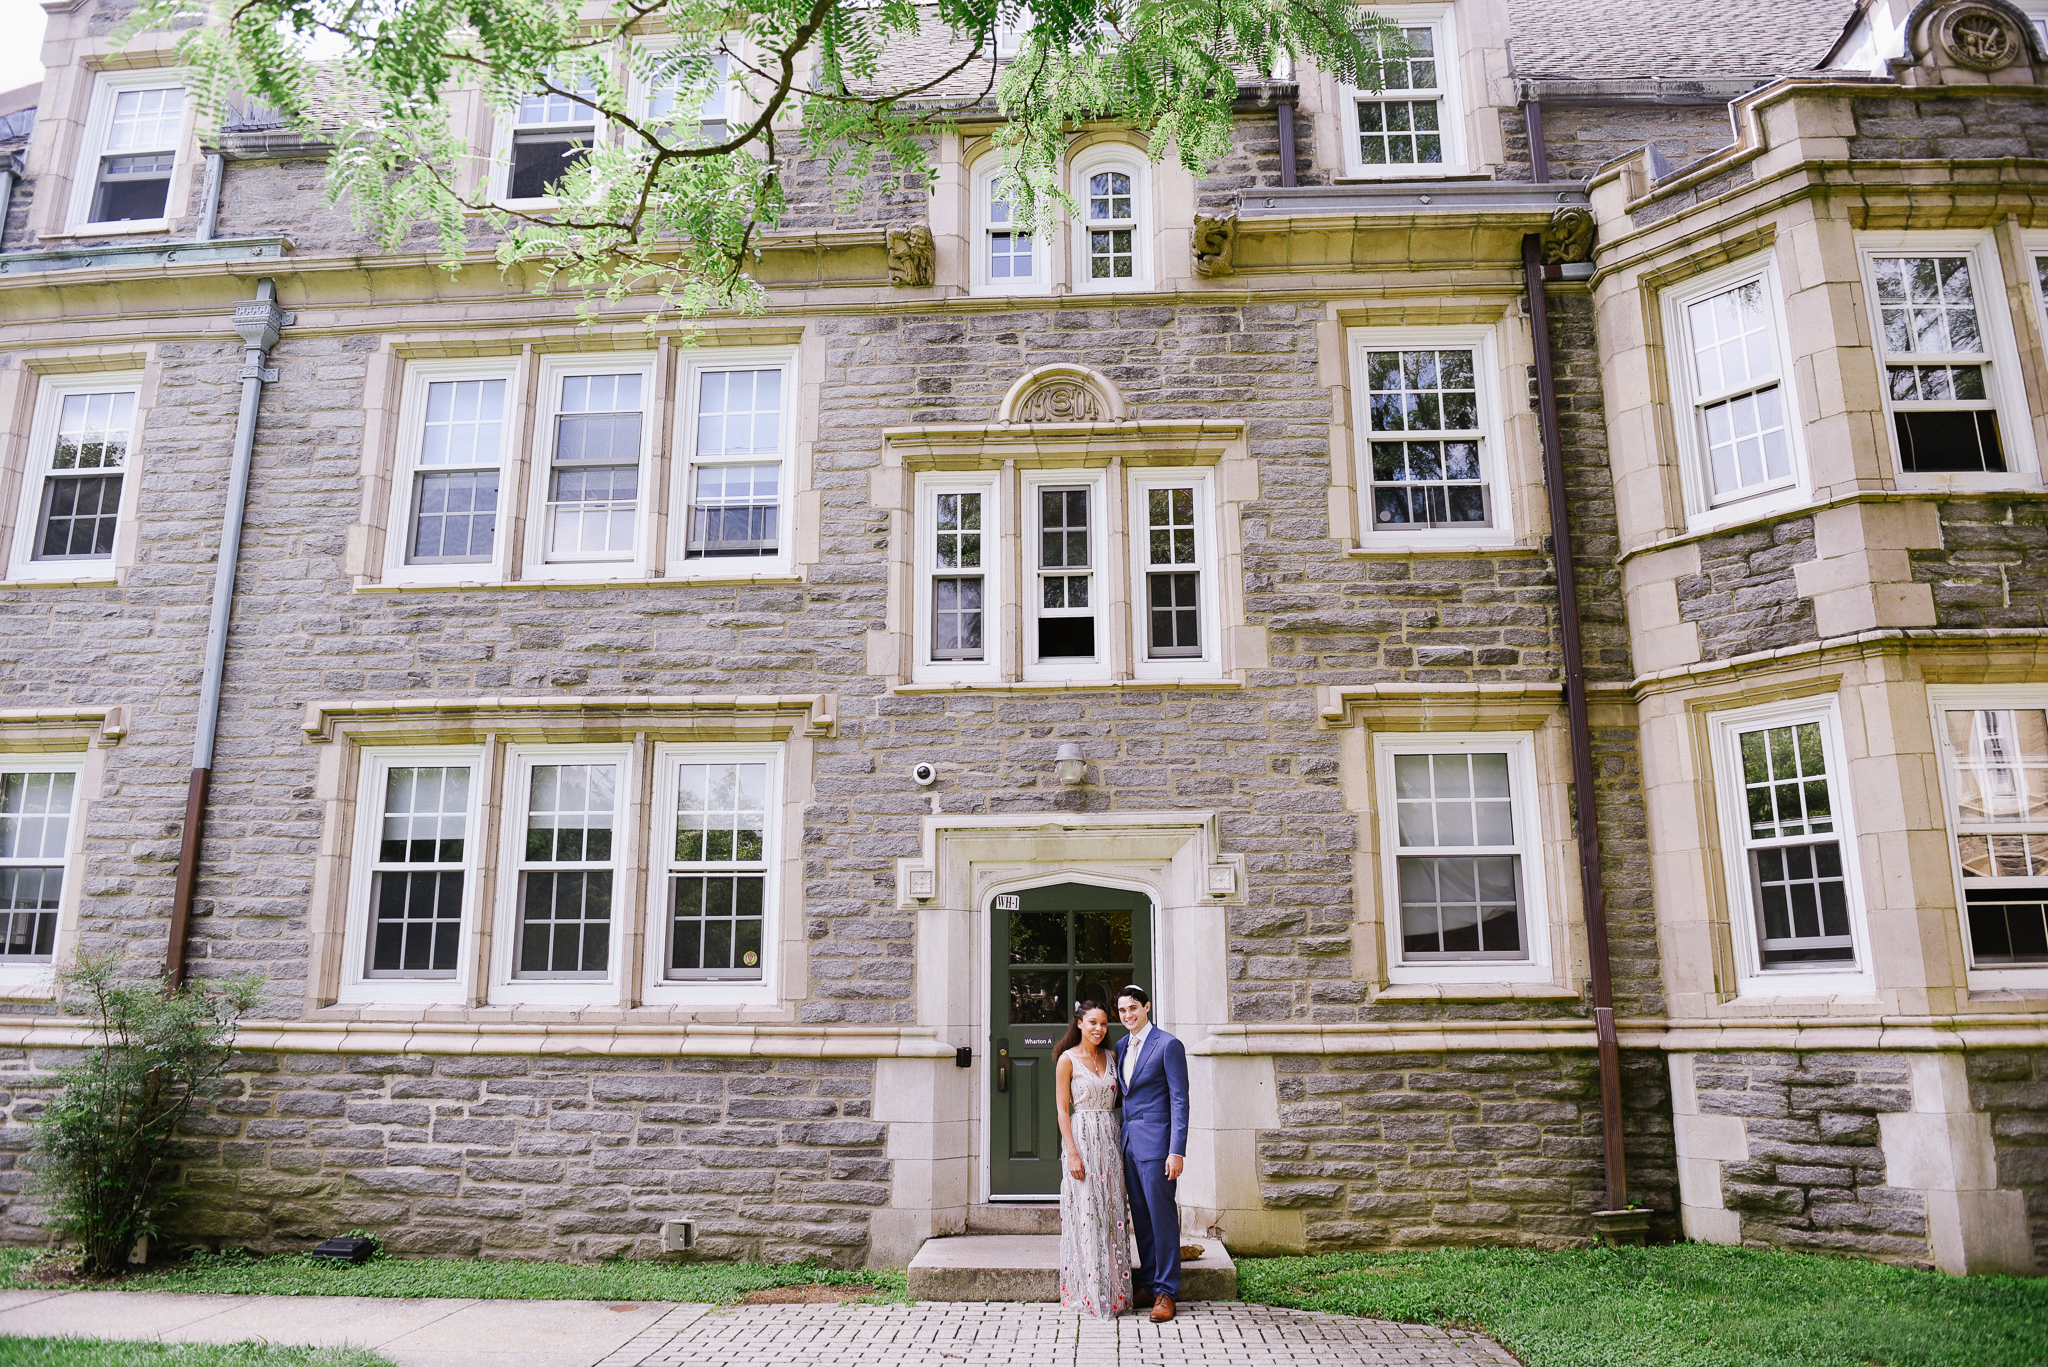 The couple poses by the dorm building where Alicia lived when they first met.